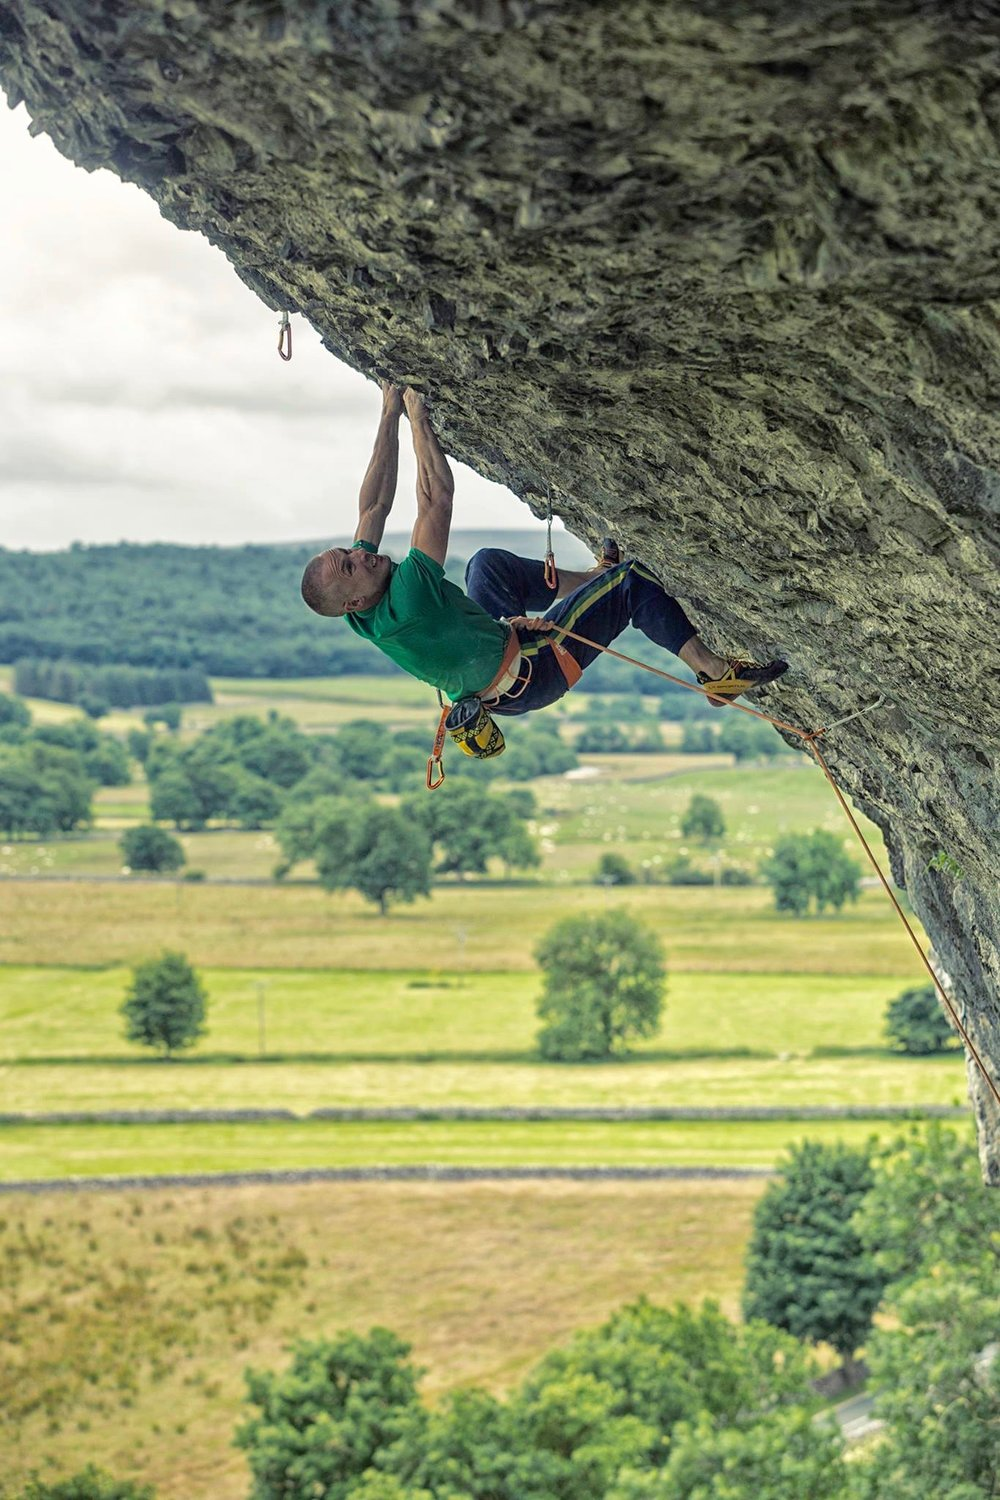 Freakshow 8c, Kilnsey, UK. First ascent in 2015.  Photo: Copyright Lukasz Warzecha